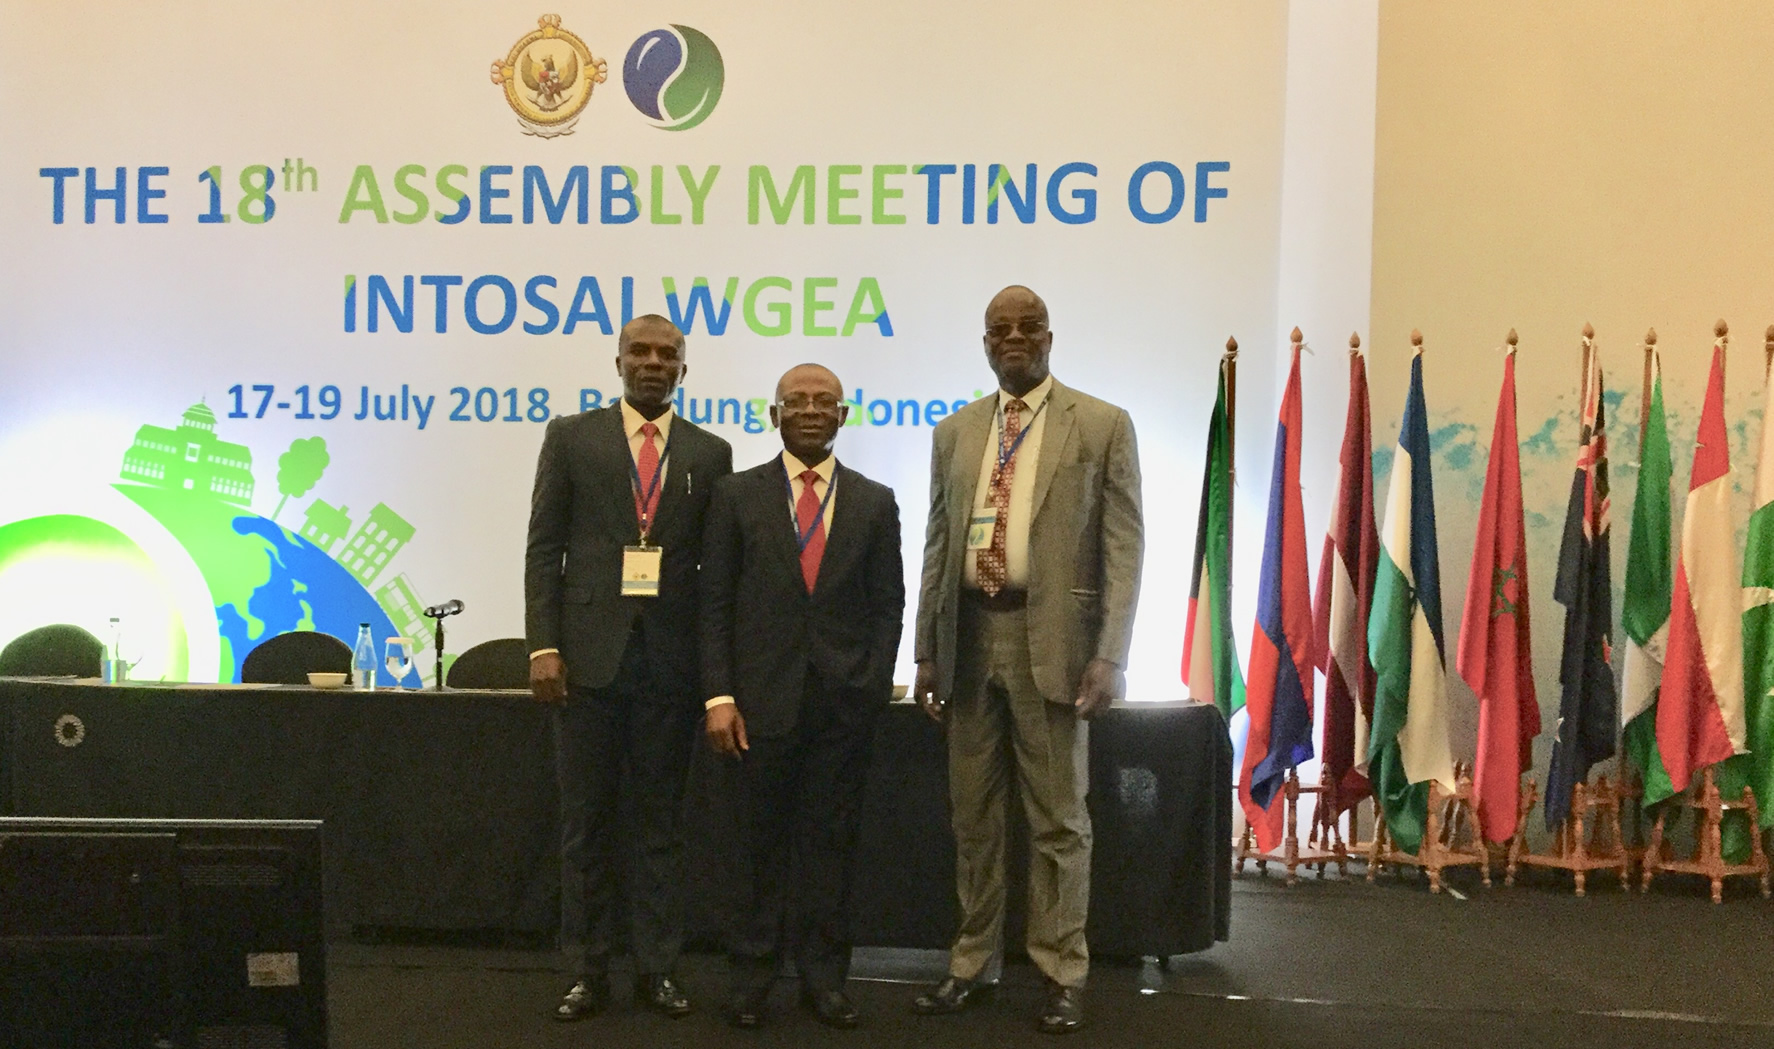 Assembly Meeting of INTOSAI WGEA - Bandung Indonesia